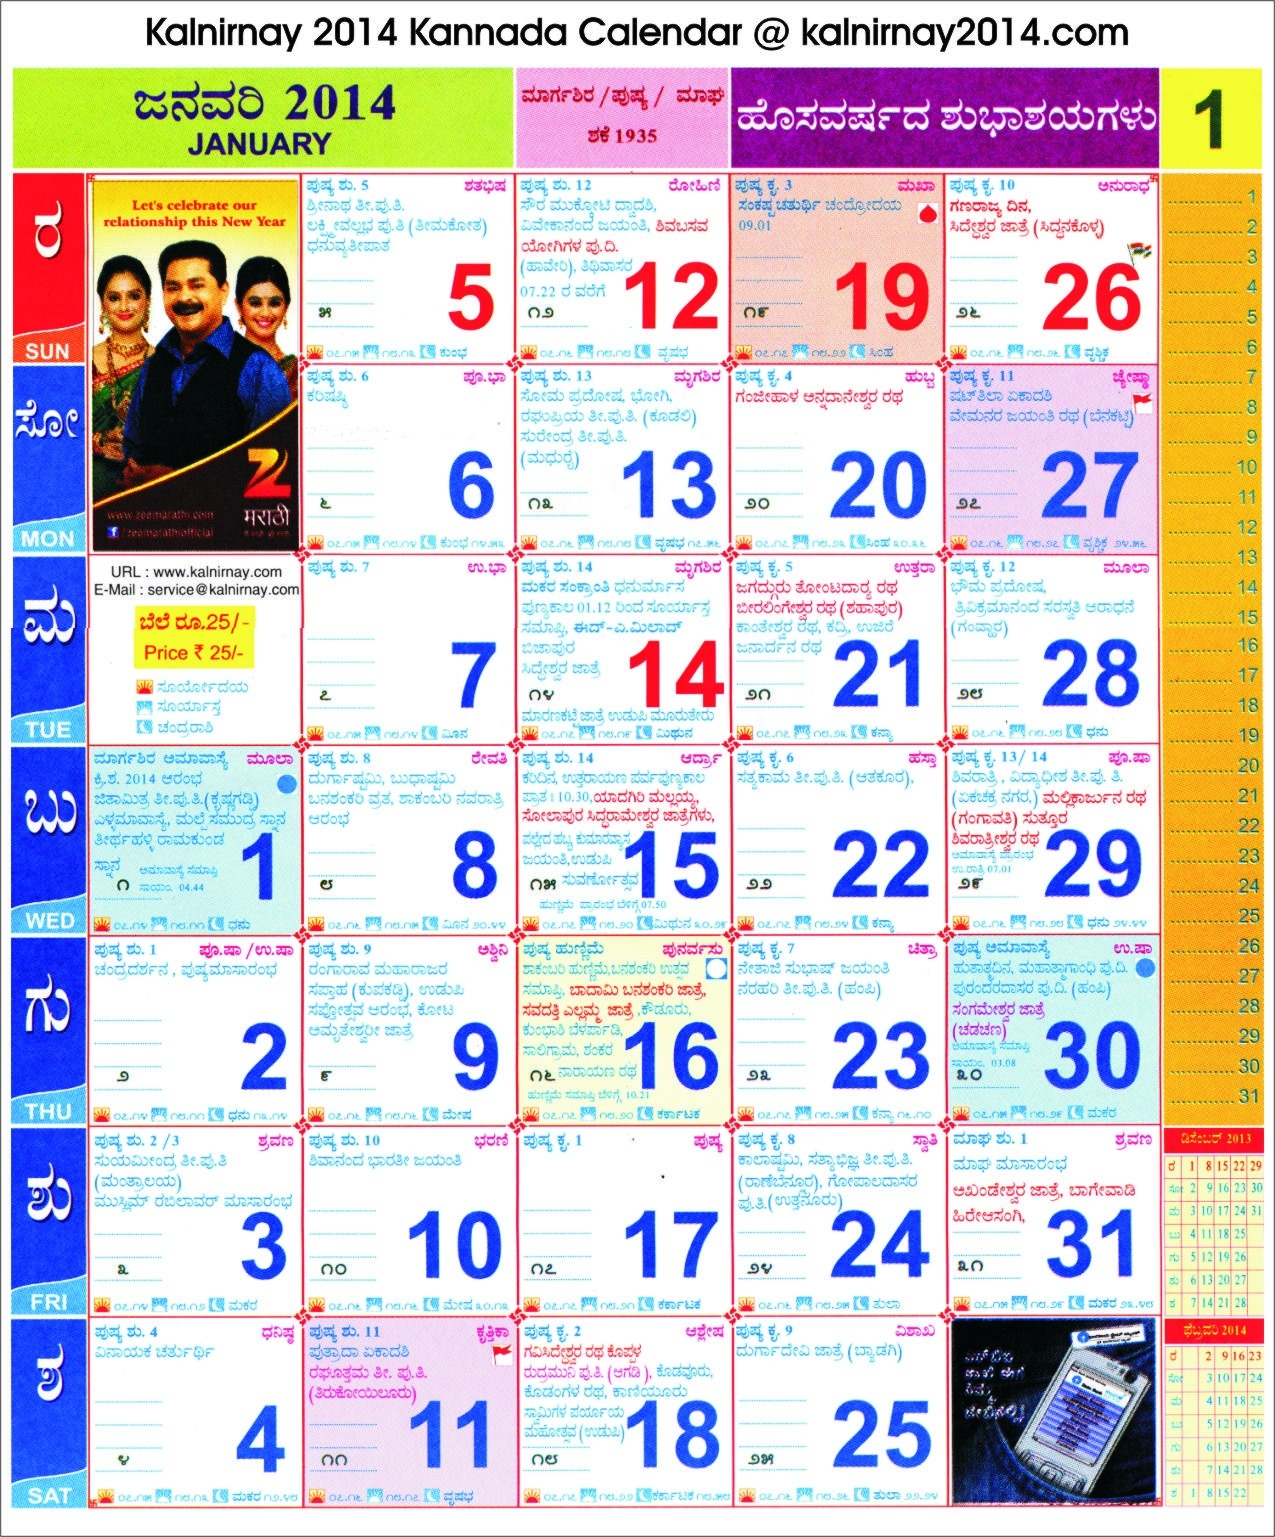 January 2014 Kannada Kalnirnay Calendar | 2014 Kannada-January 2020 Calendar In Kannada